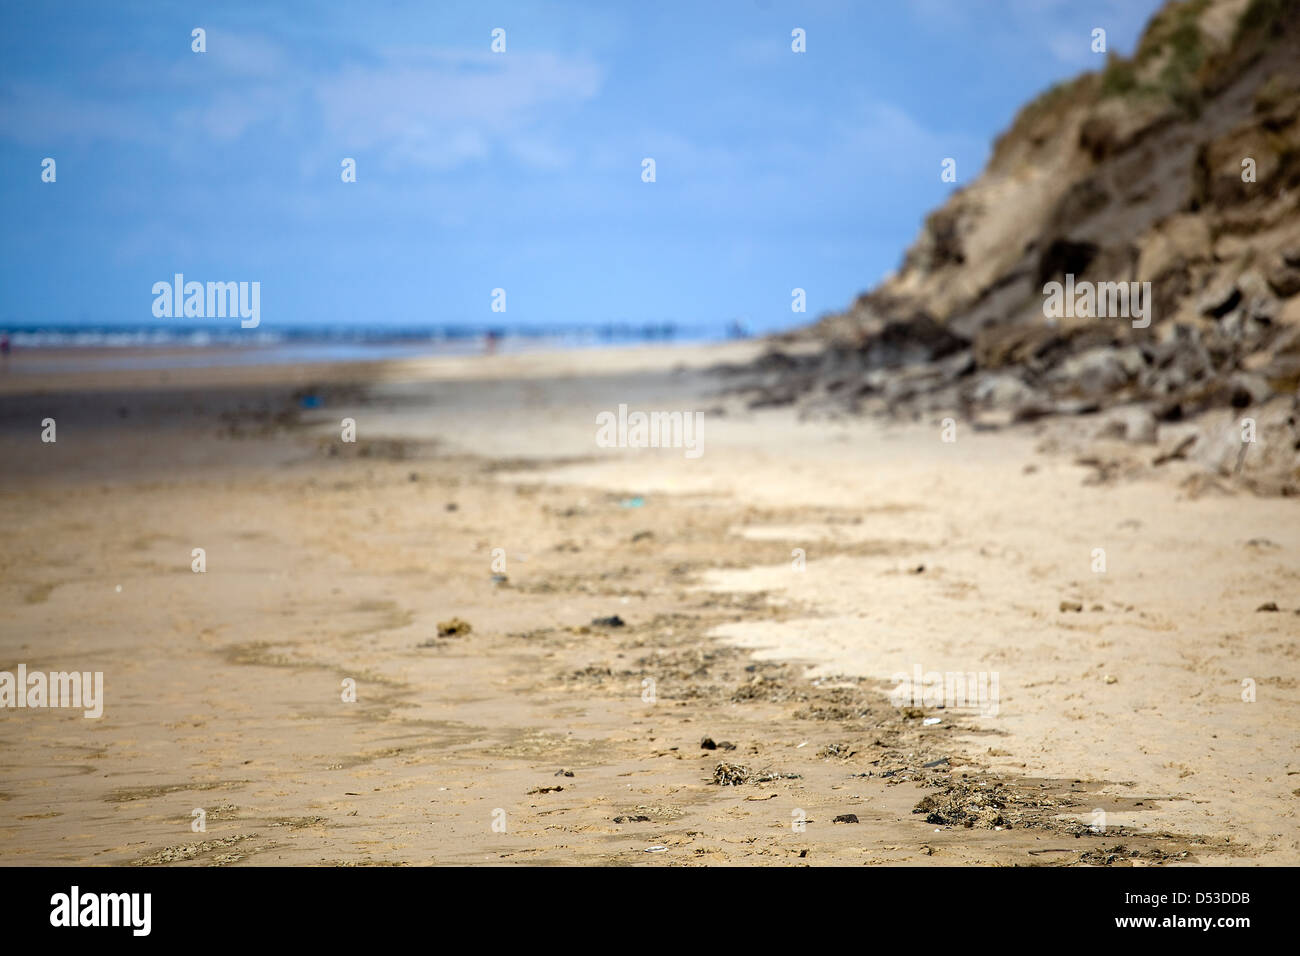 Formby Beach, Liverpoool, United Kingdom - Stock Image